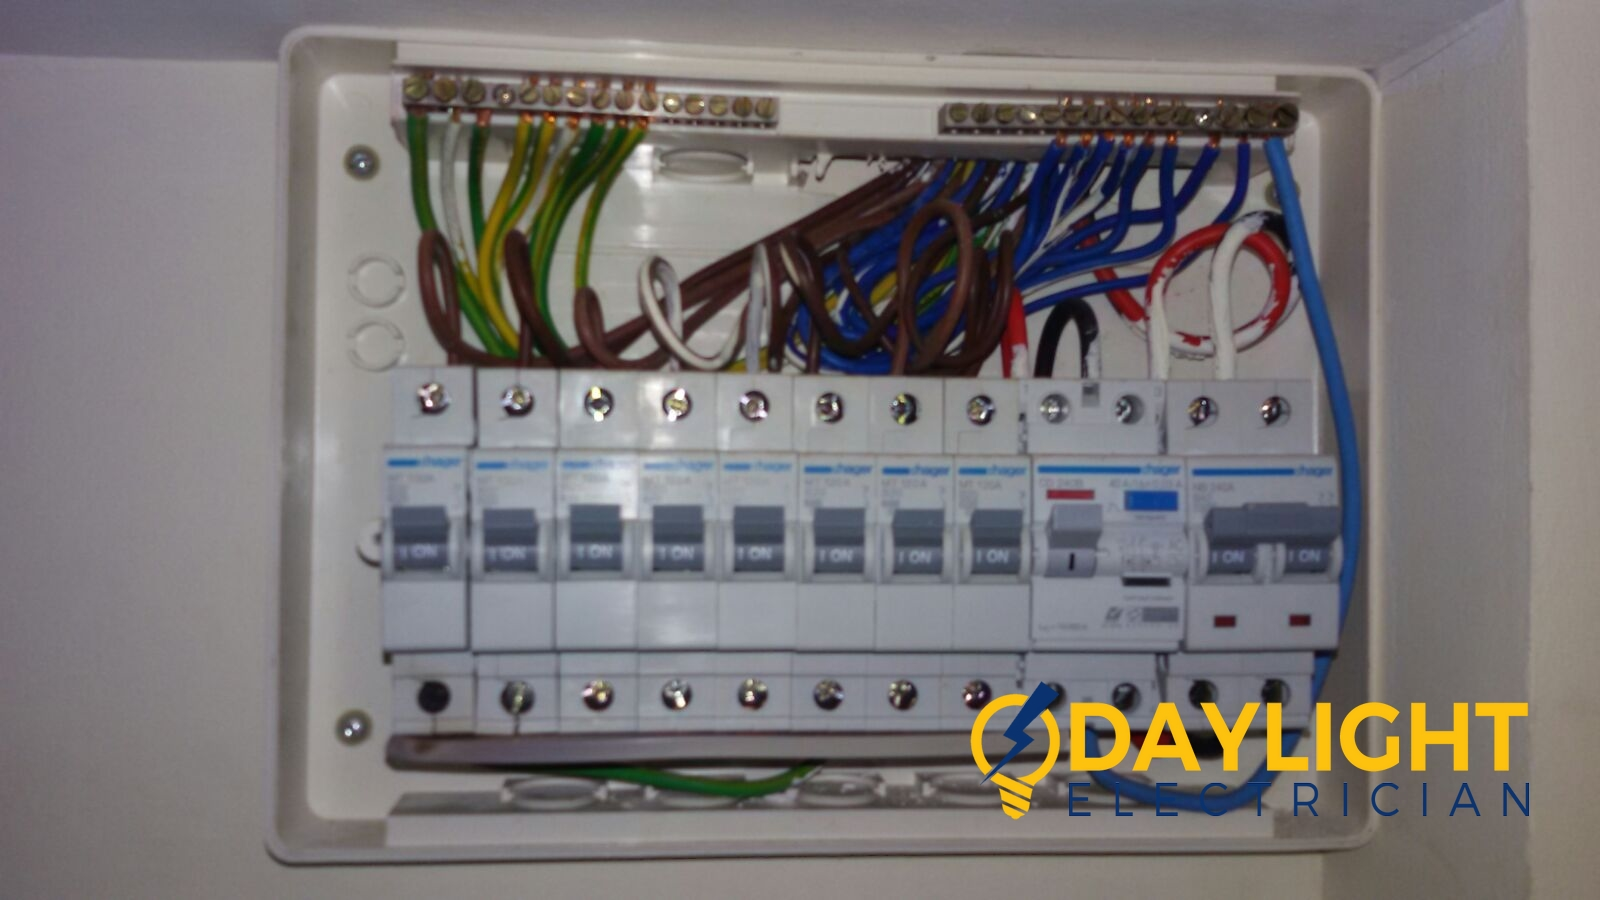 Electrical Db Wiring Diagram And Schematics 3 Phase Fuse Box Change Mcb Link Bar Electrician Singapore Hdb Bishan Rh Daylightelectrician Com Size